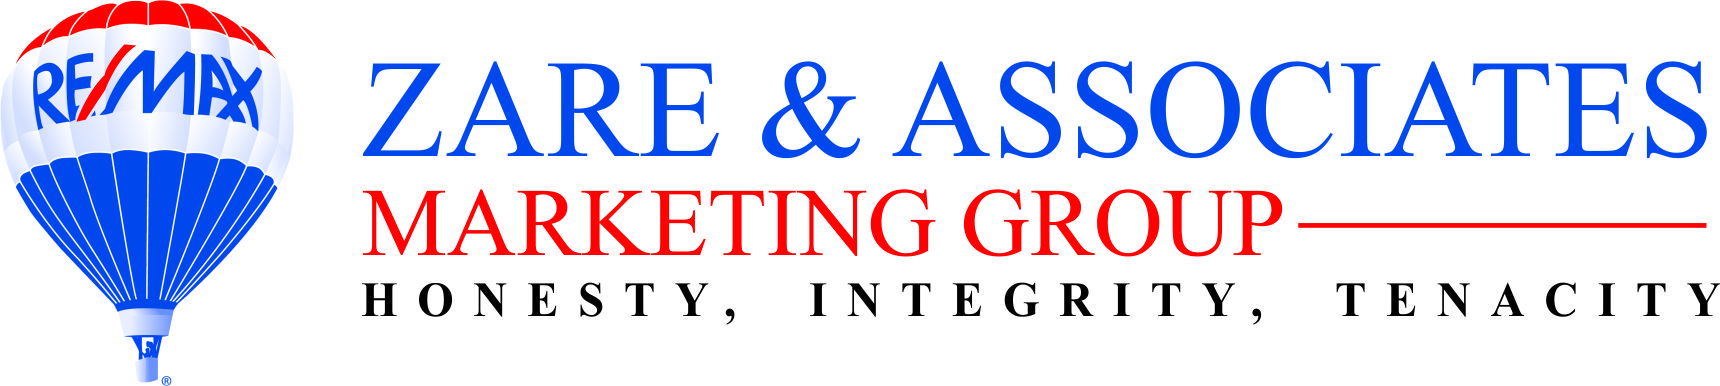 Zare & Associates Marketing Group logo